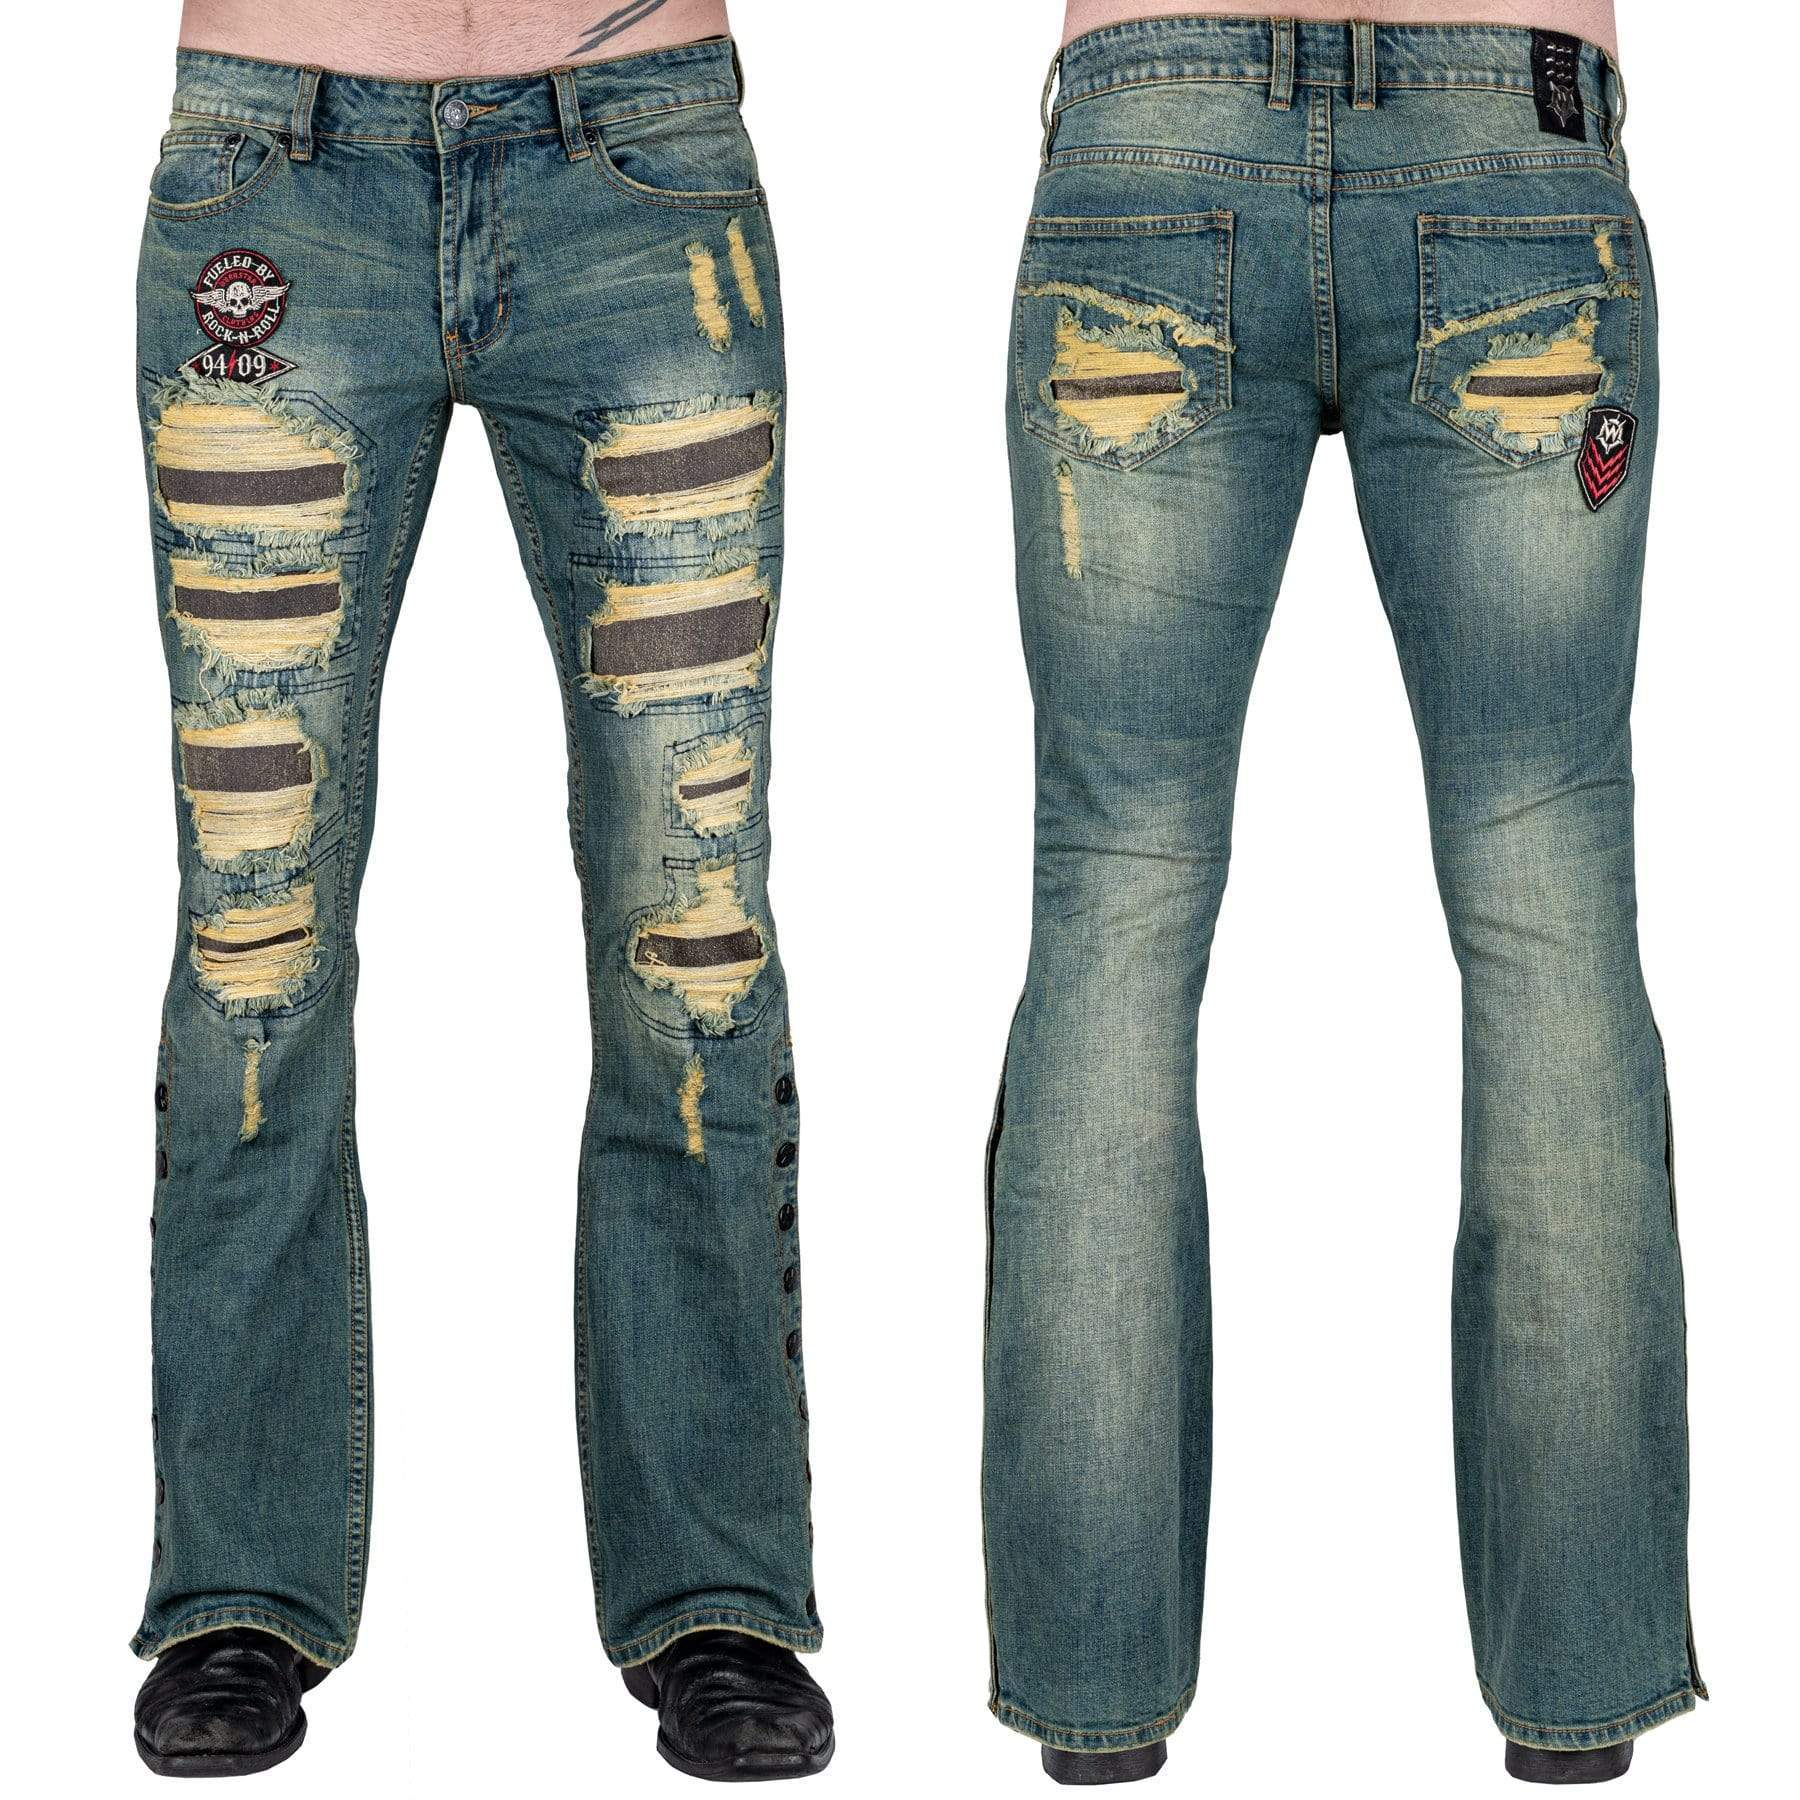 Wornstar Jeans - Stage Collection - Diurne